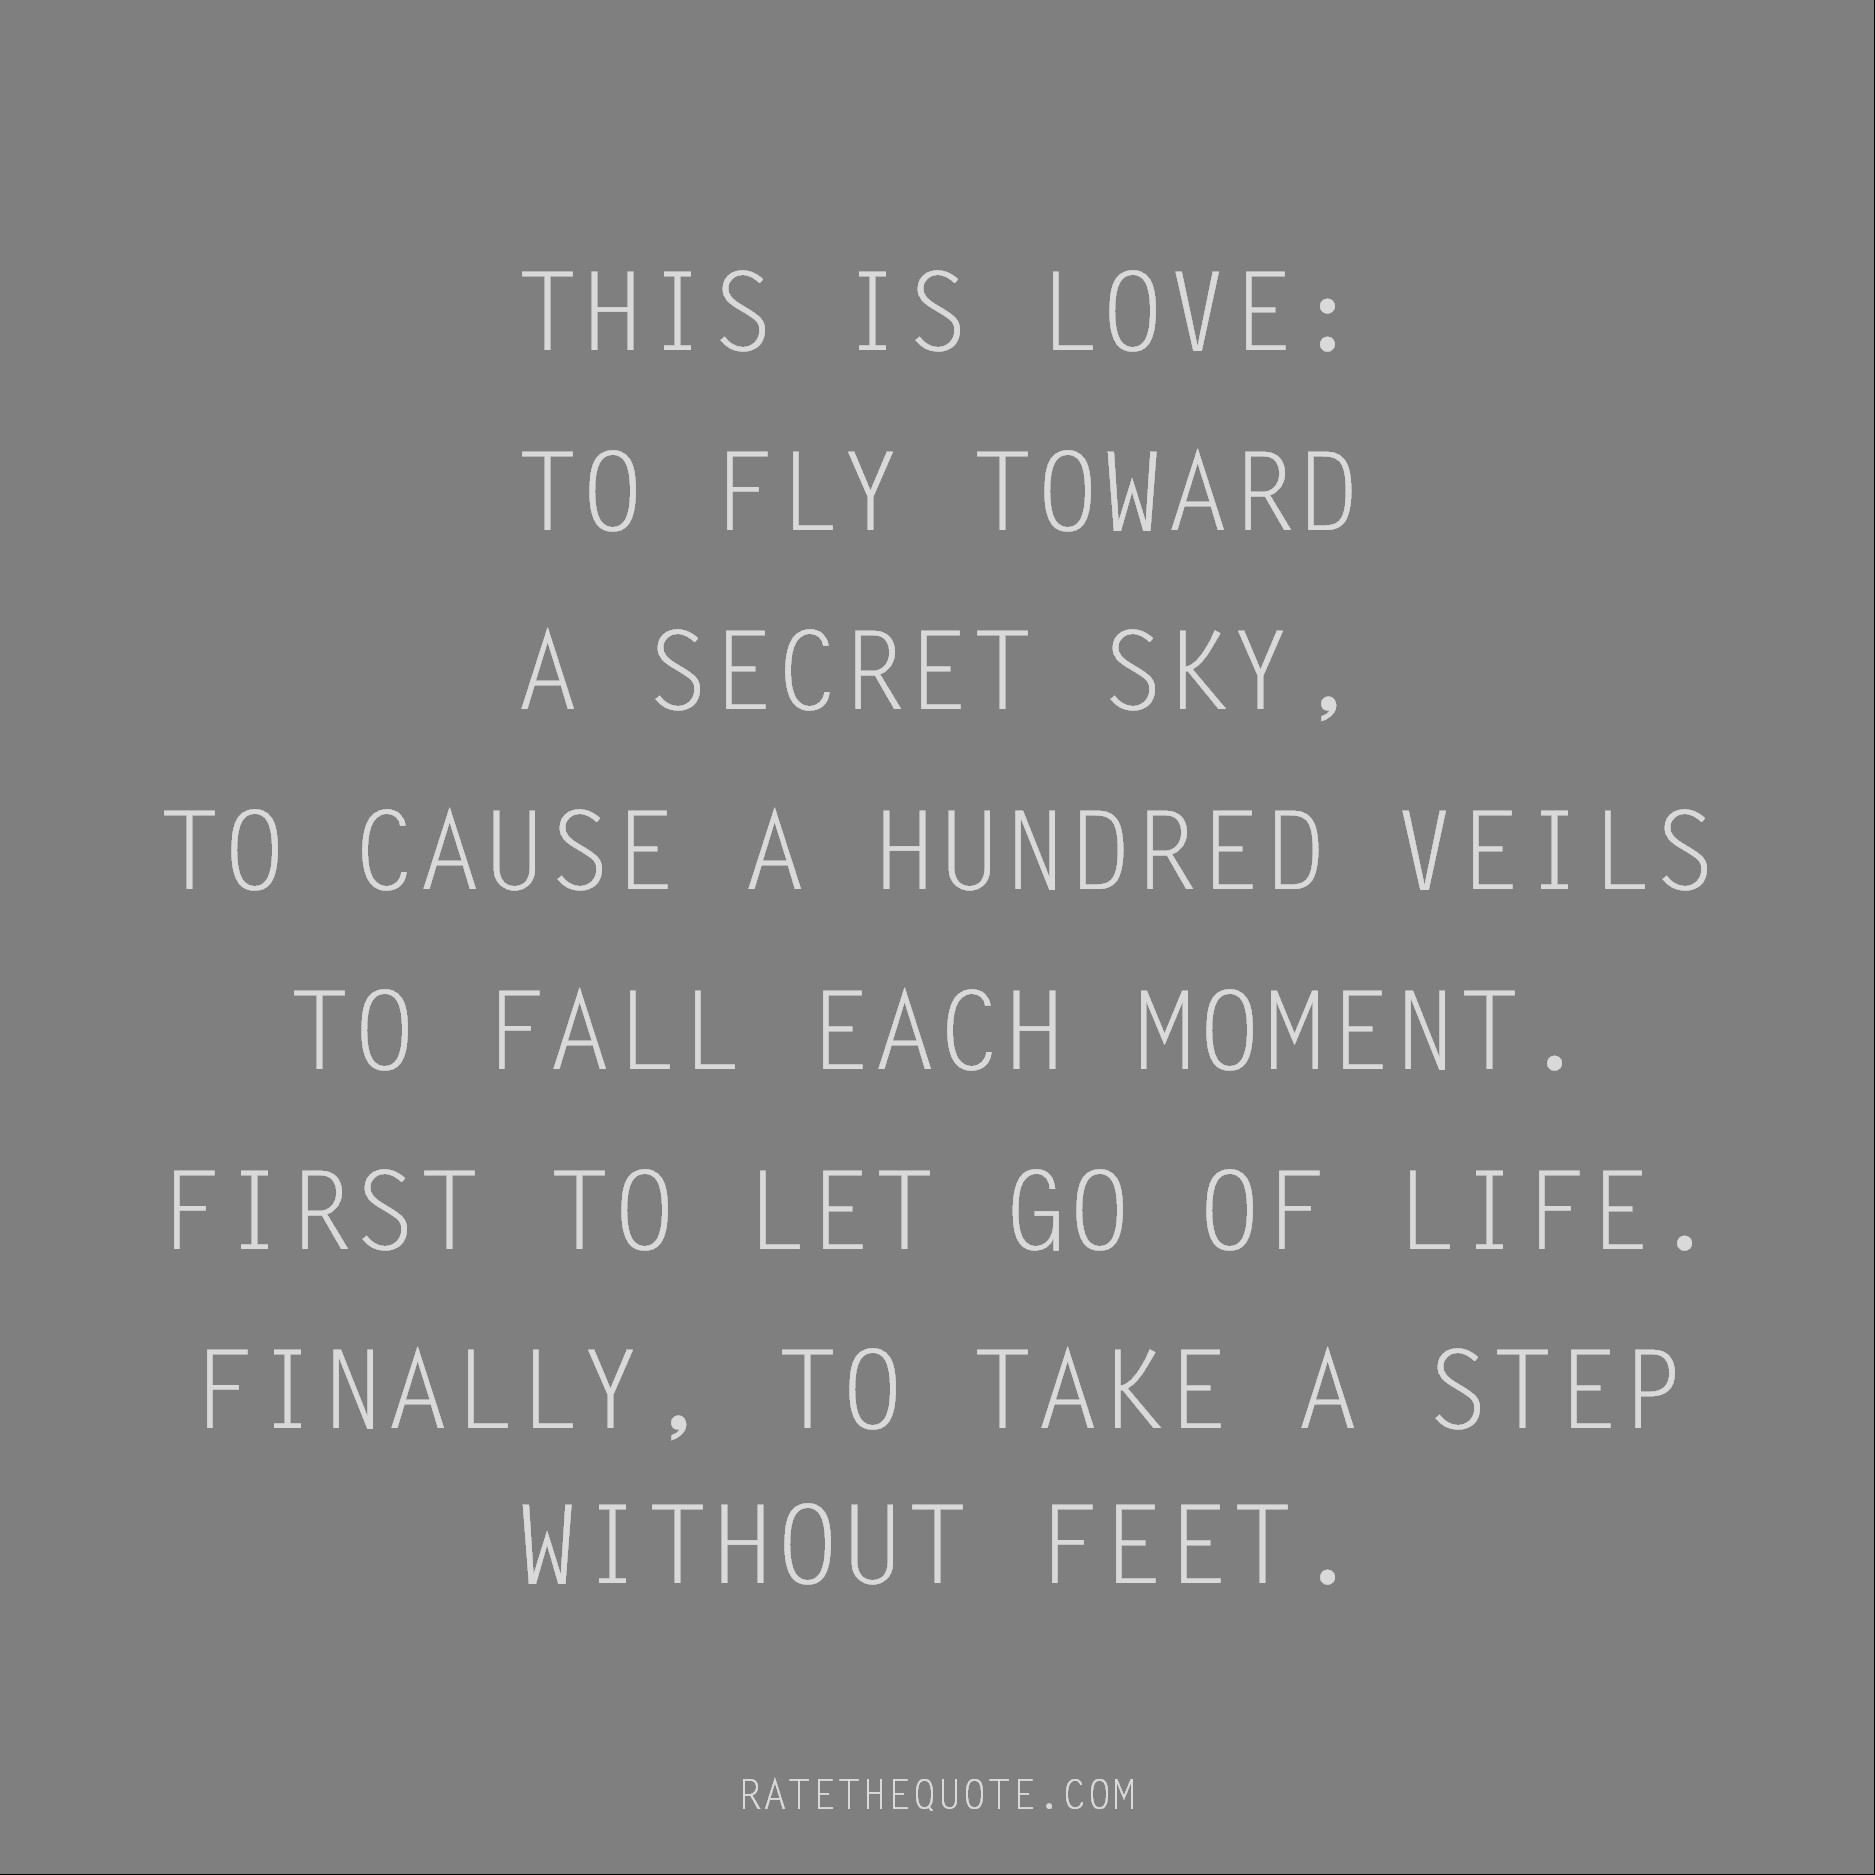 Rumi Quote This is love: to fly toward a secret sky, to cause a hundred veils to fall each moment. First to let go of life. Finally, to take a step without feet.